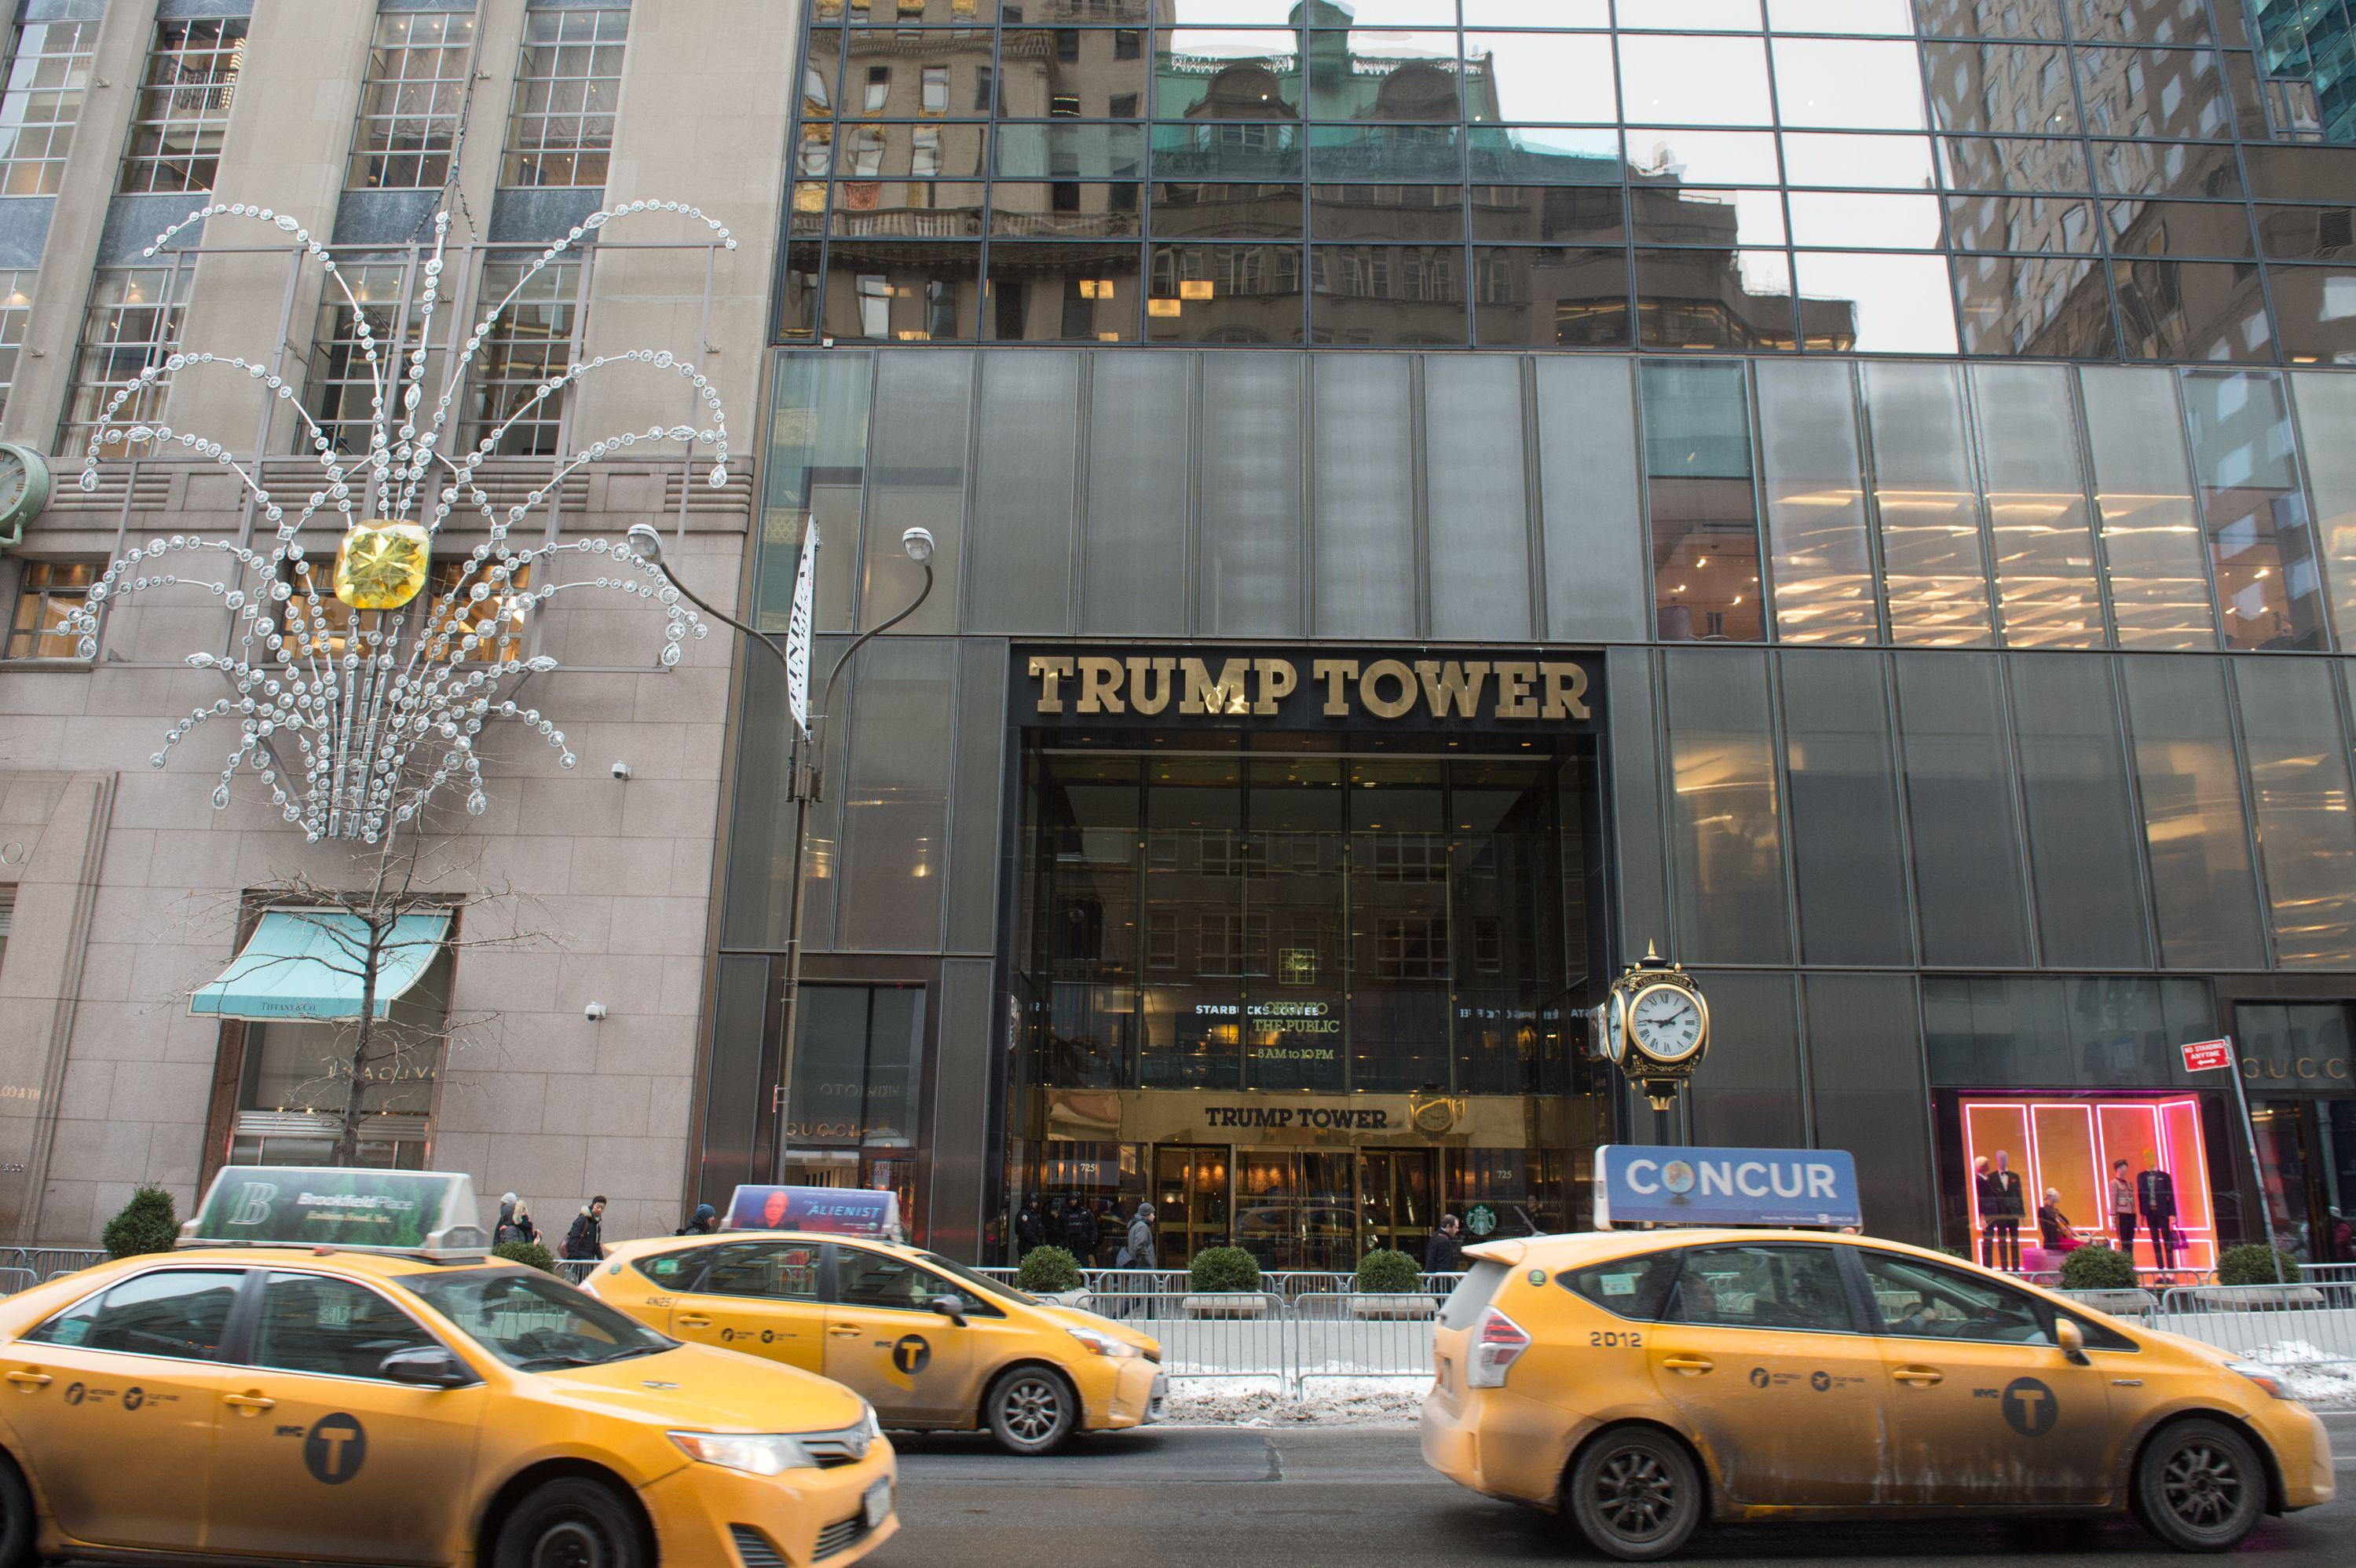 Cars drive past the front of Trump Tower on Fifth Avenue on January 8, 2018 in New York.